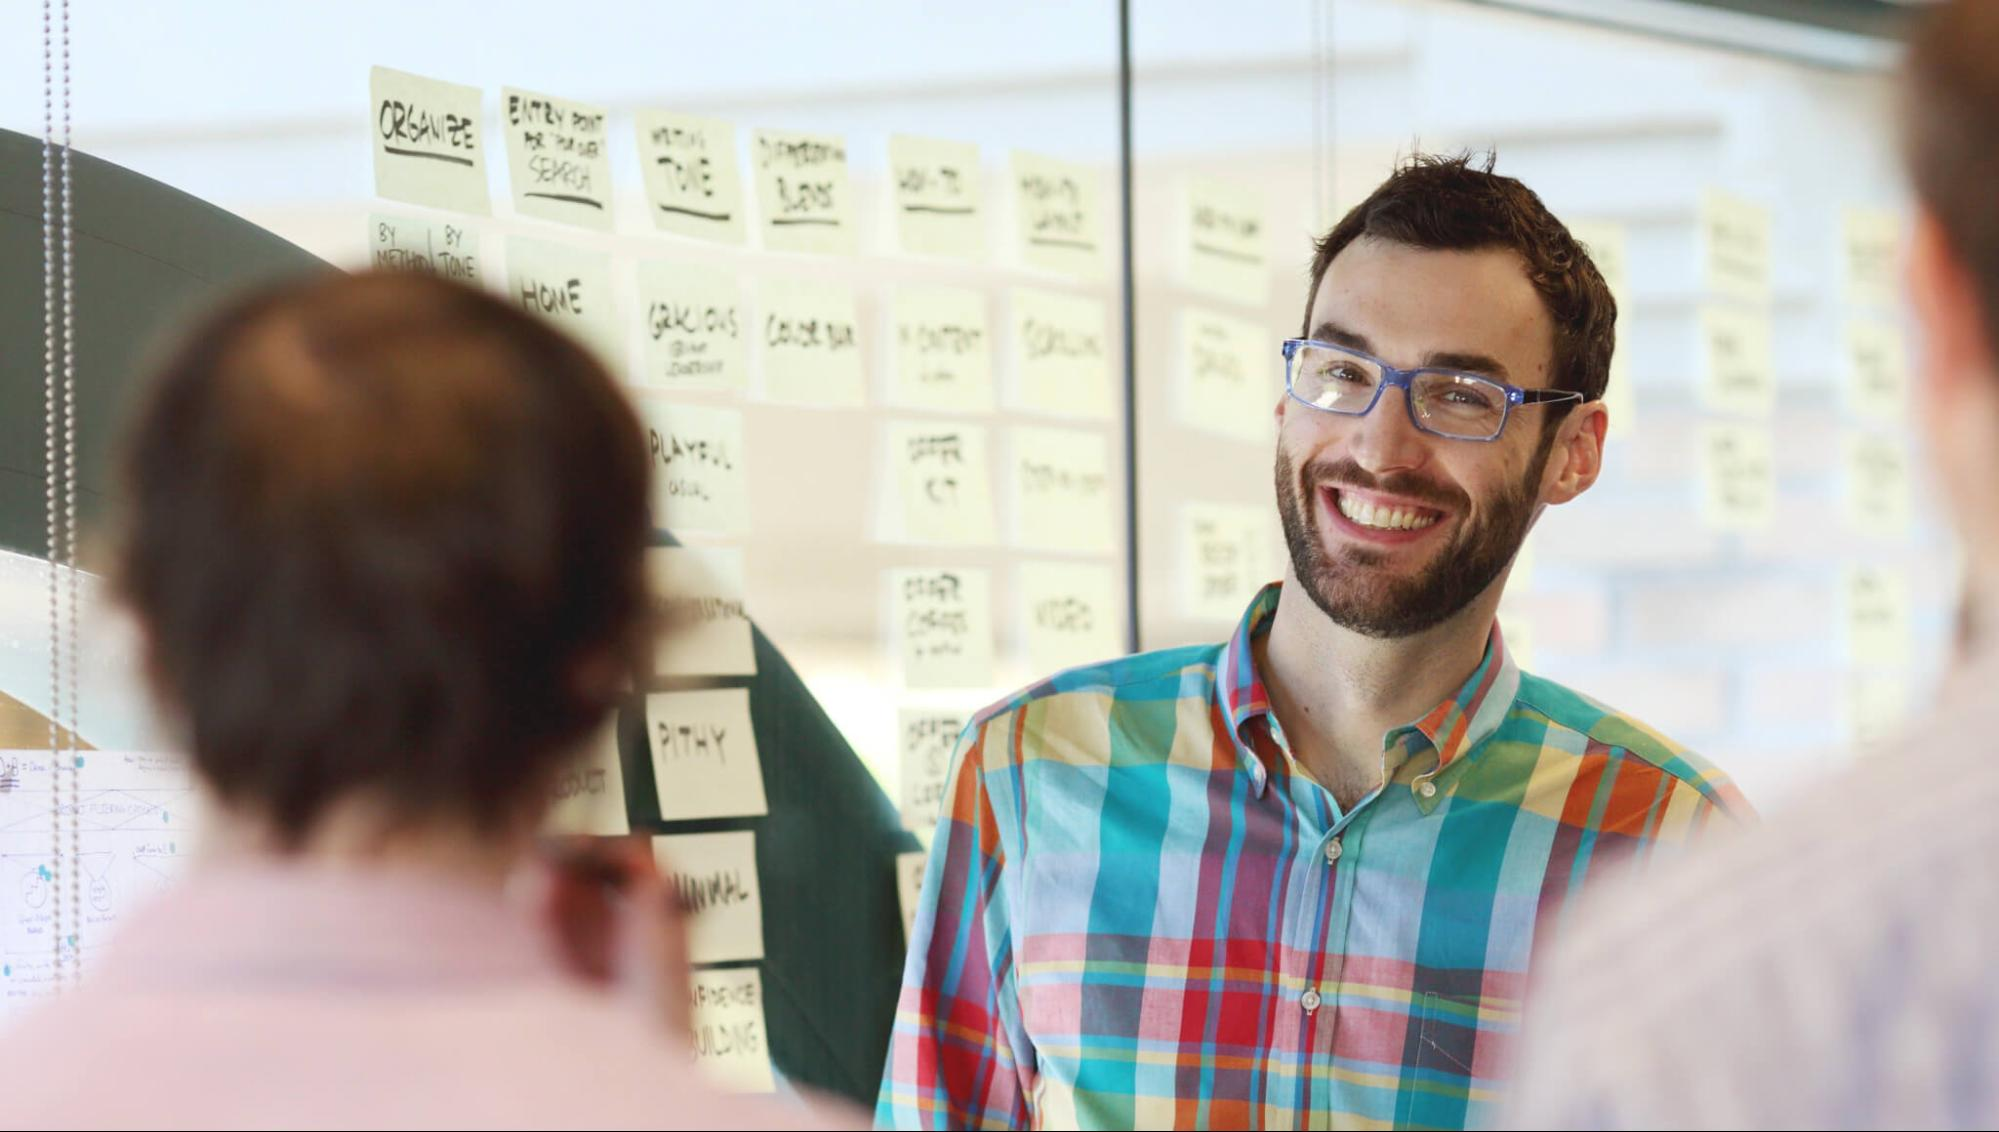 Design Sprint Inventor Jake Knapp on How Good Design Story Gets You Hired